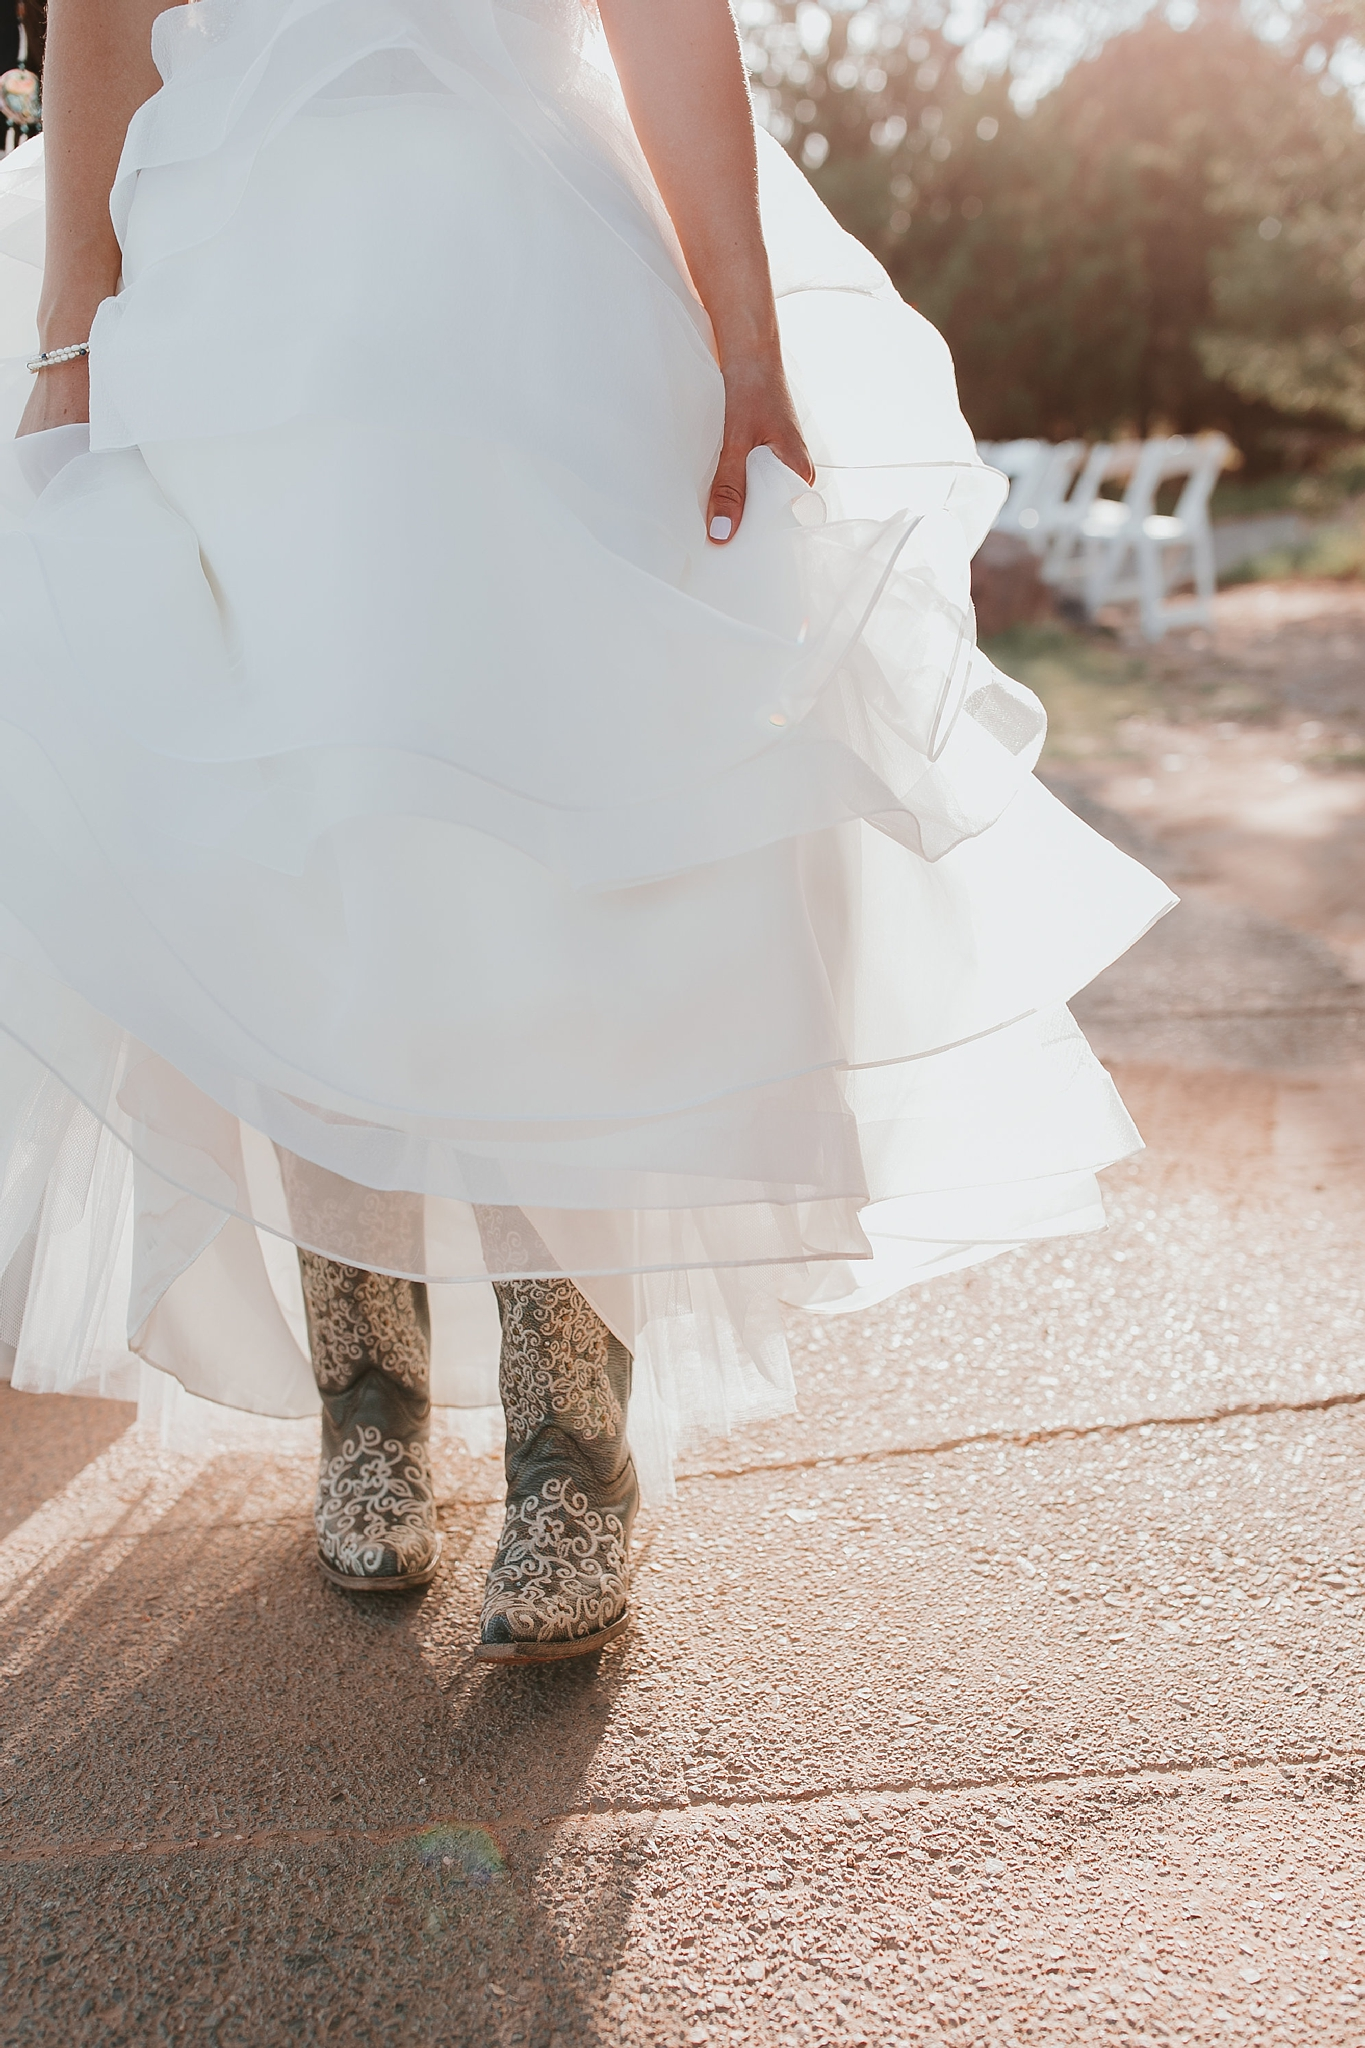 Alicia+lucia+photography+-+albuquerque+wedding+photographer+-+santa+fe+wedding+photography+-+new+mexico+wedding+photographer+-+new+mexico+wedding+-+new+mexico+wedding+-+colorado+wedding+-+bridal+shoes+-+bridal+inspo_0022.jpg